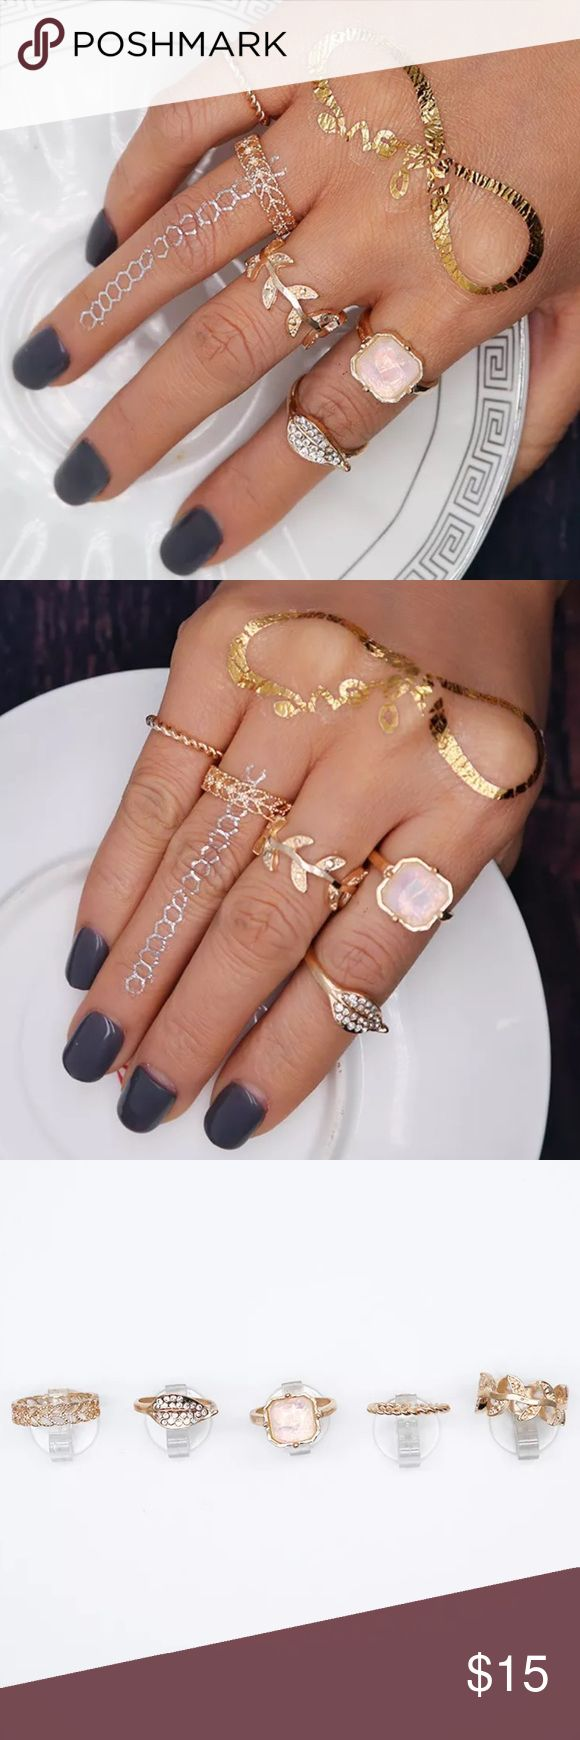 New Item✨ 5 piece Gold Midi Ring Set ✨ ✨ Fashion Jewelry ✨ Alloy, Gold Plated, Rhinestones, White Opal Stone  ✨ Super Cute Ring Set- Very Sparkly   Brand New✨ PRICE IS FIRM- already listed at lowest price  If you want to save please look into bundling  In Stock No Trades Will ship within 24- 48 hours Monday-Friday  Please -NO- Offers on items priced $10 and under AND ON SALE ITEMS‼️  Serious Inquiries Only❣️  Bundle one or more items from my boutique to only pay one shipping fee✨ Jewelry…